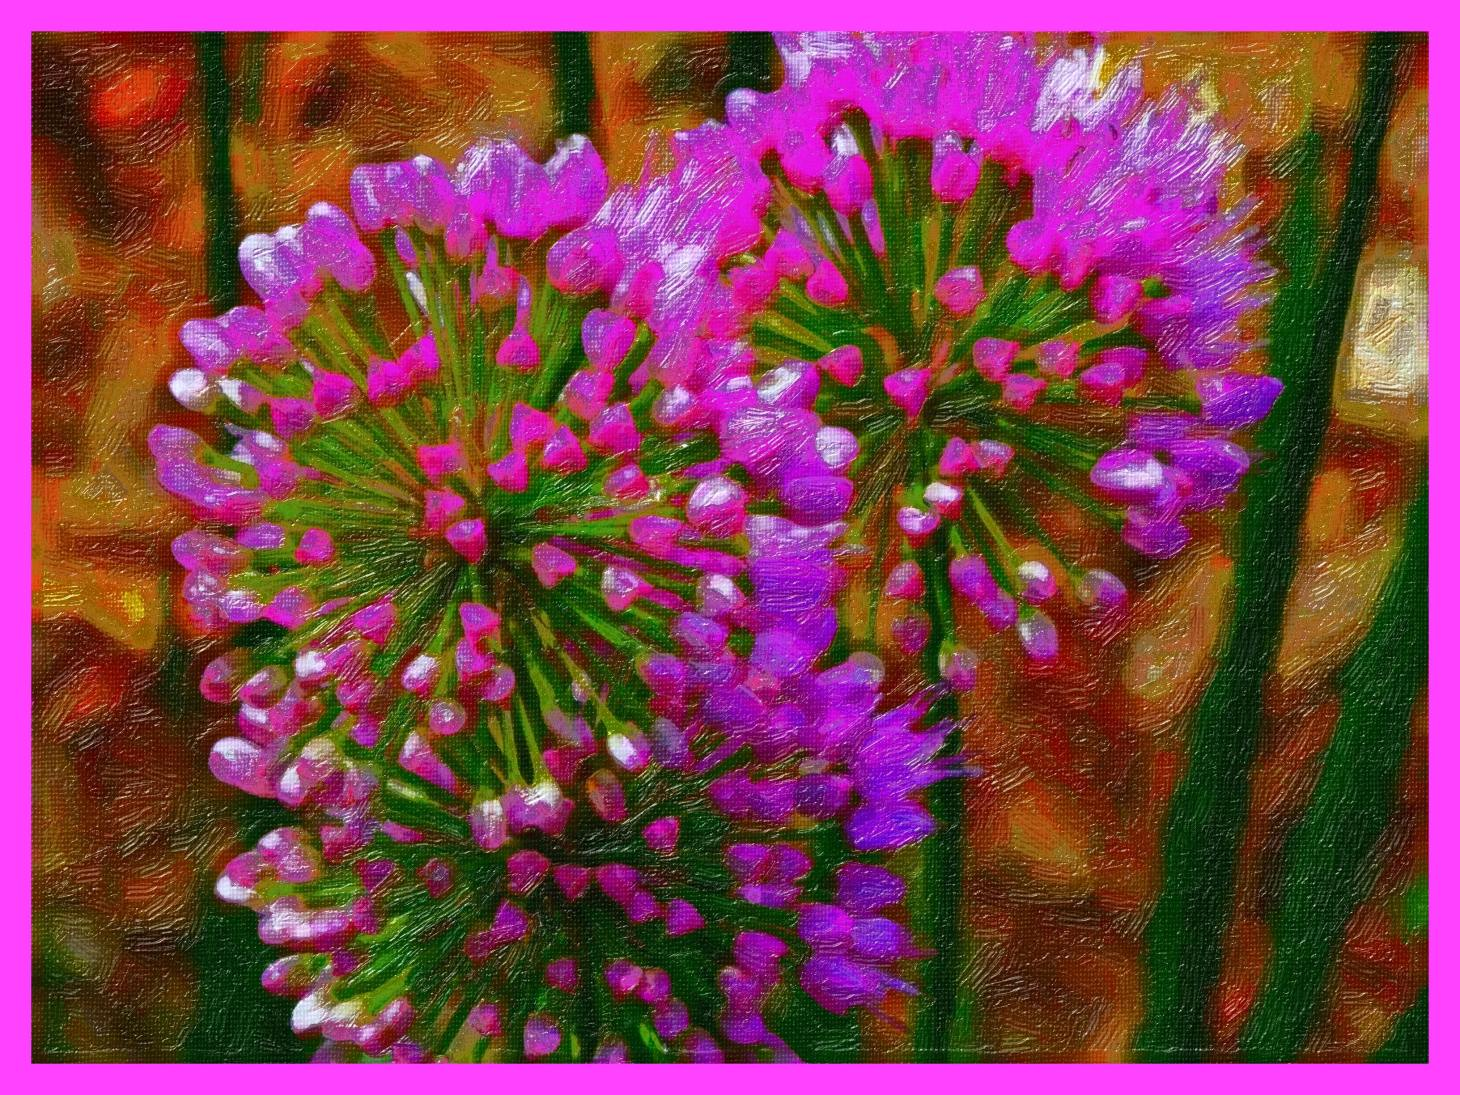 Chives, together as one. (2) Photo by Thomas Peace c. 2015